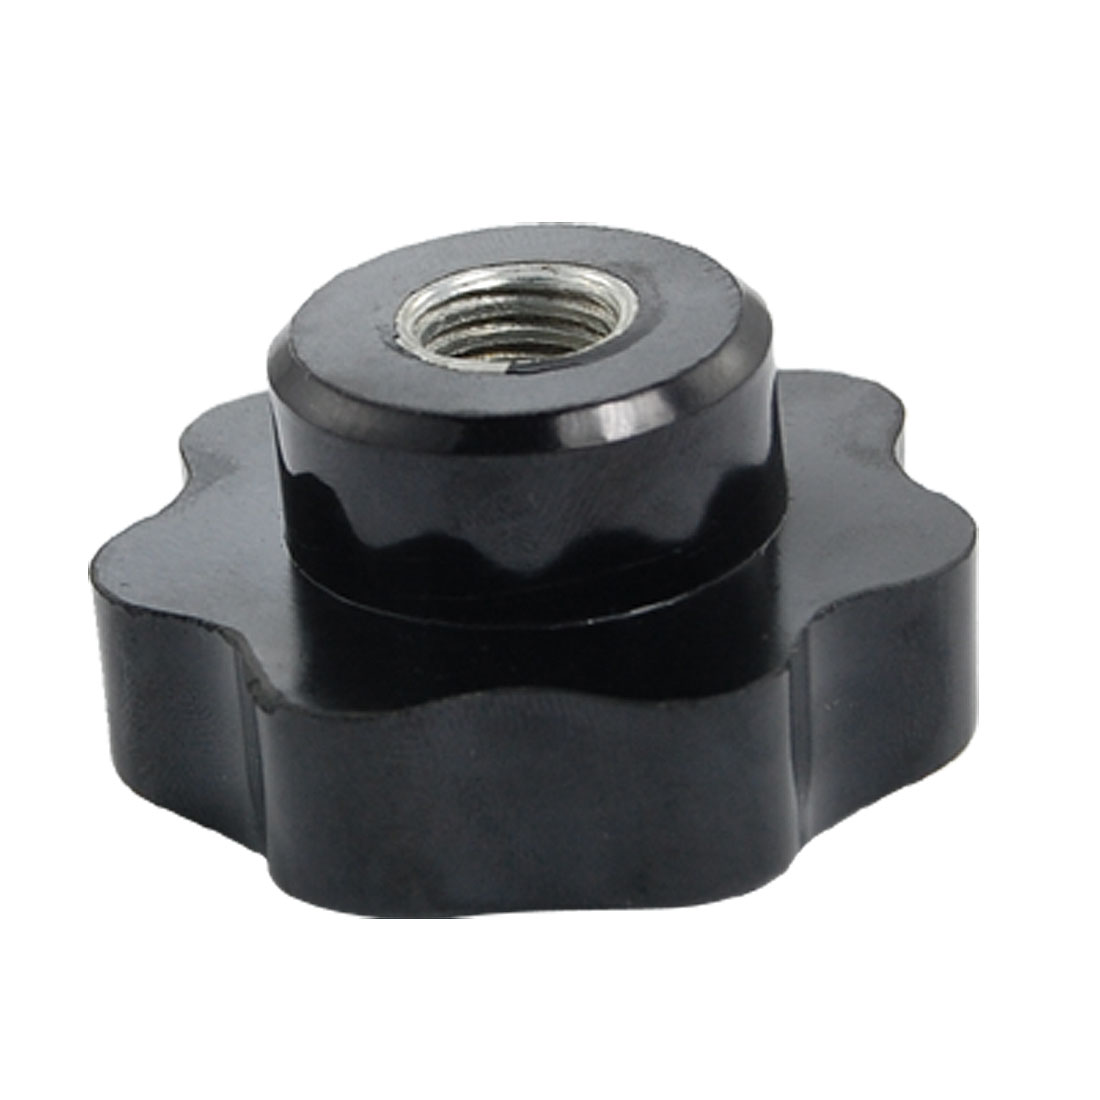 12mm Female Thread Diameter Black Plastic Star Knob Replacement